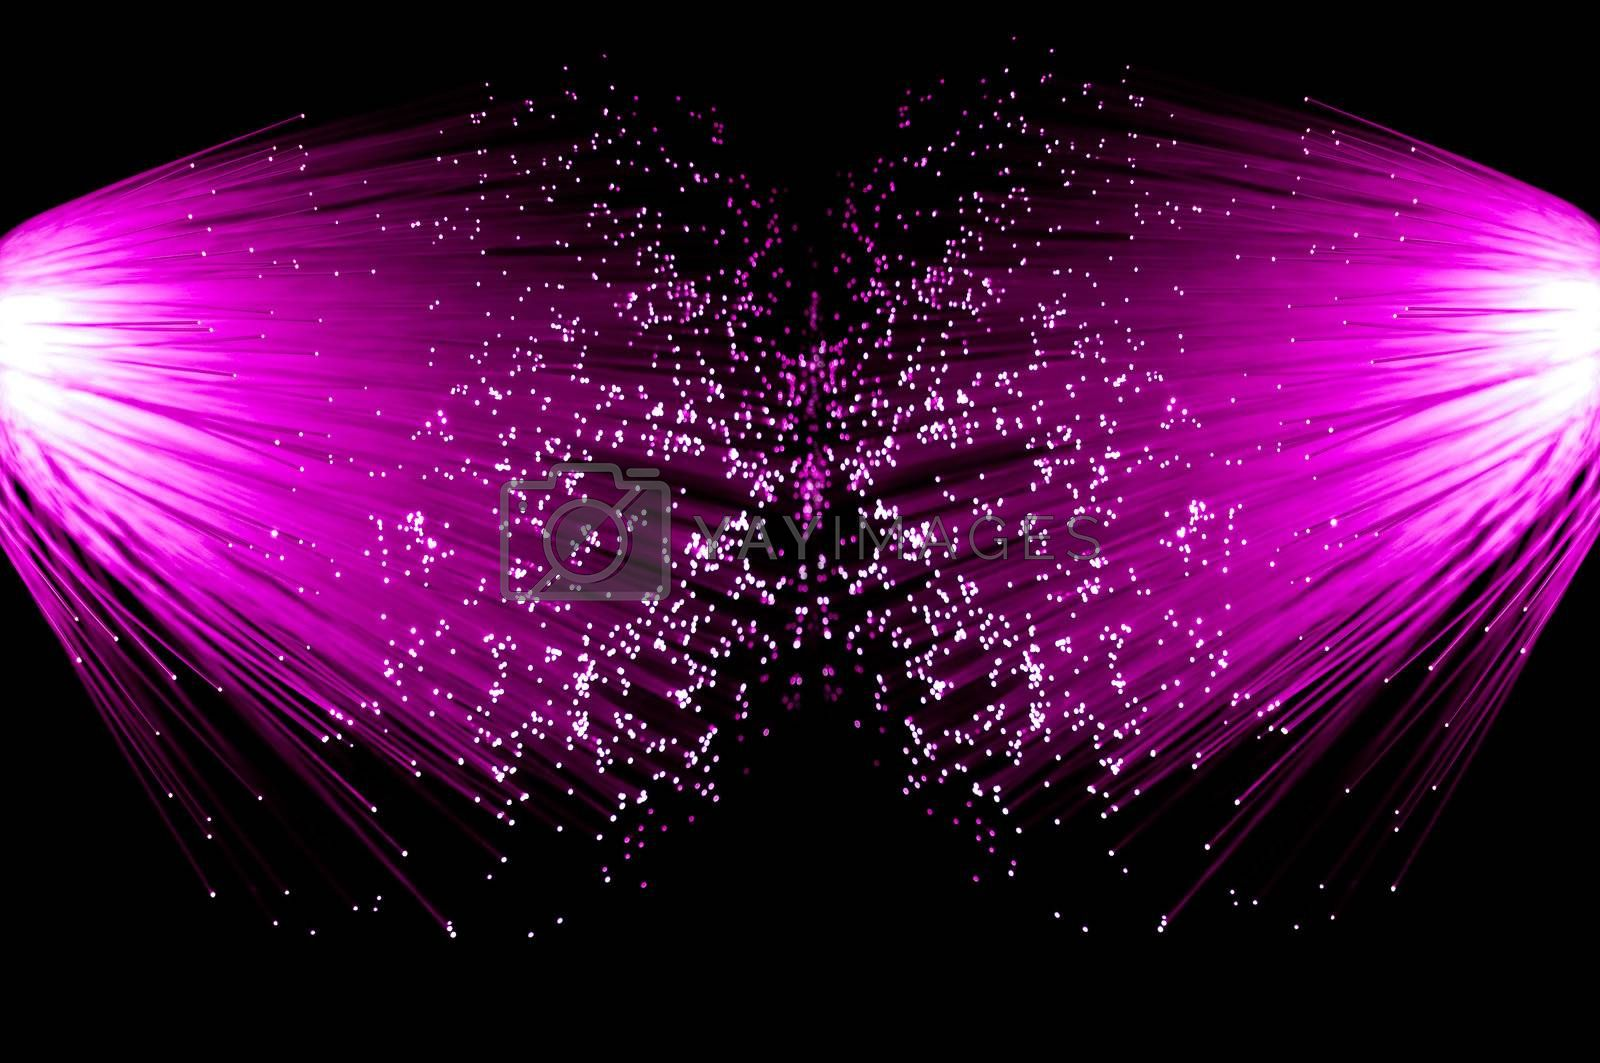 Two illuminated groups of bright pink fibre optic strands emanating from the left and right of the image. Black background.